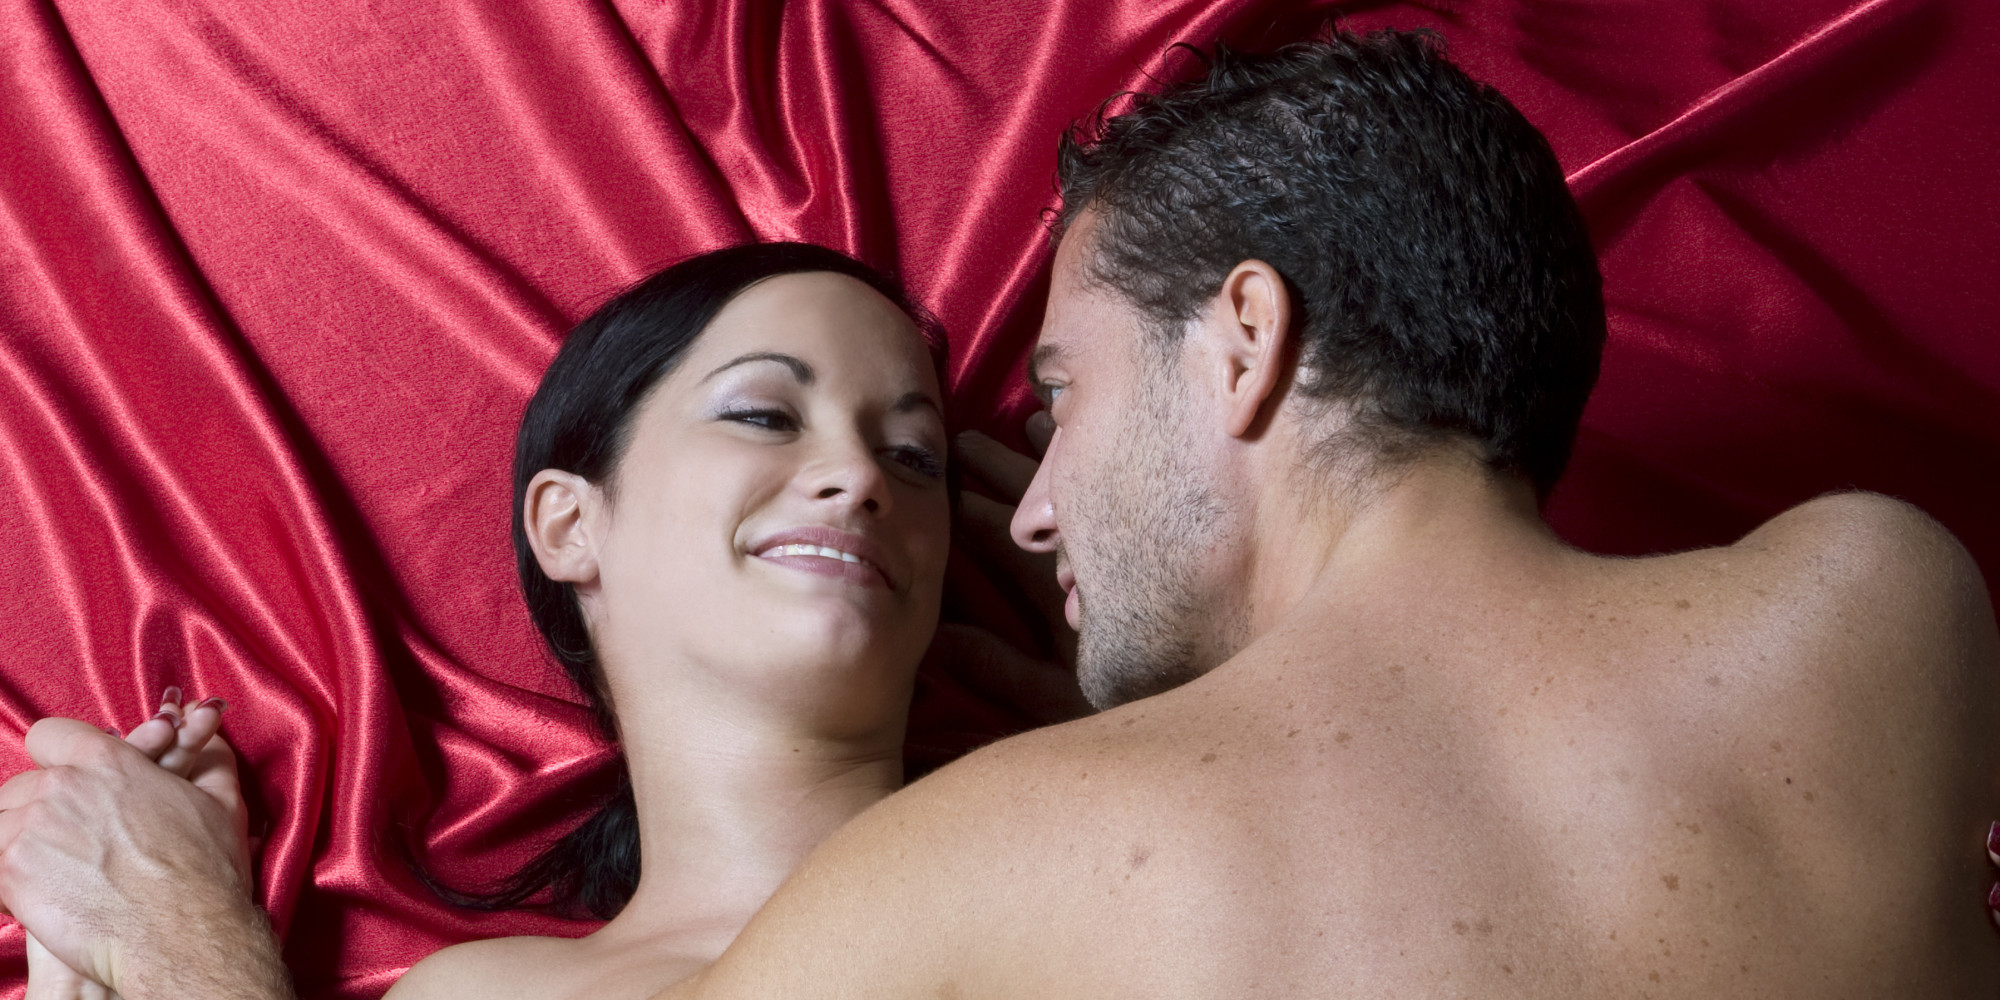 Things you must be familiar with before buying a sex toy for the first time